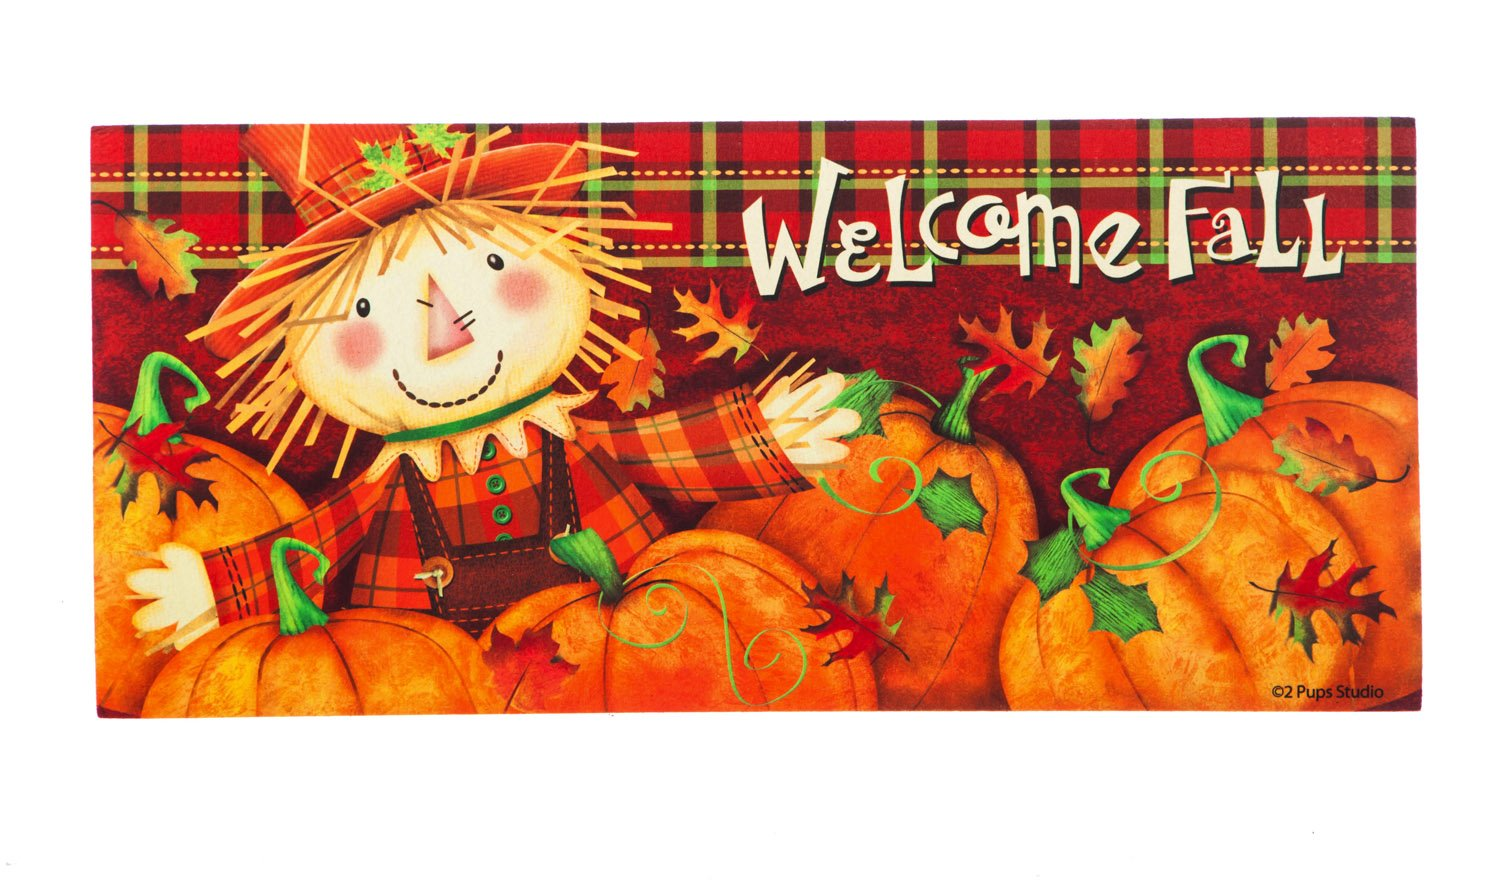 Evergreen Scarecrow Decorative Mat Insert, 10 x 22 inches by Evergreen Flag